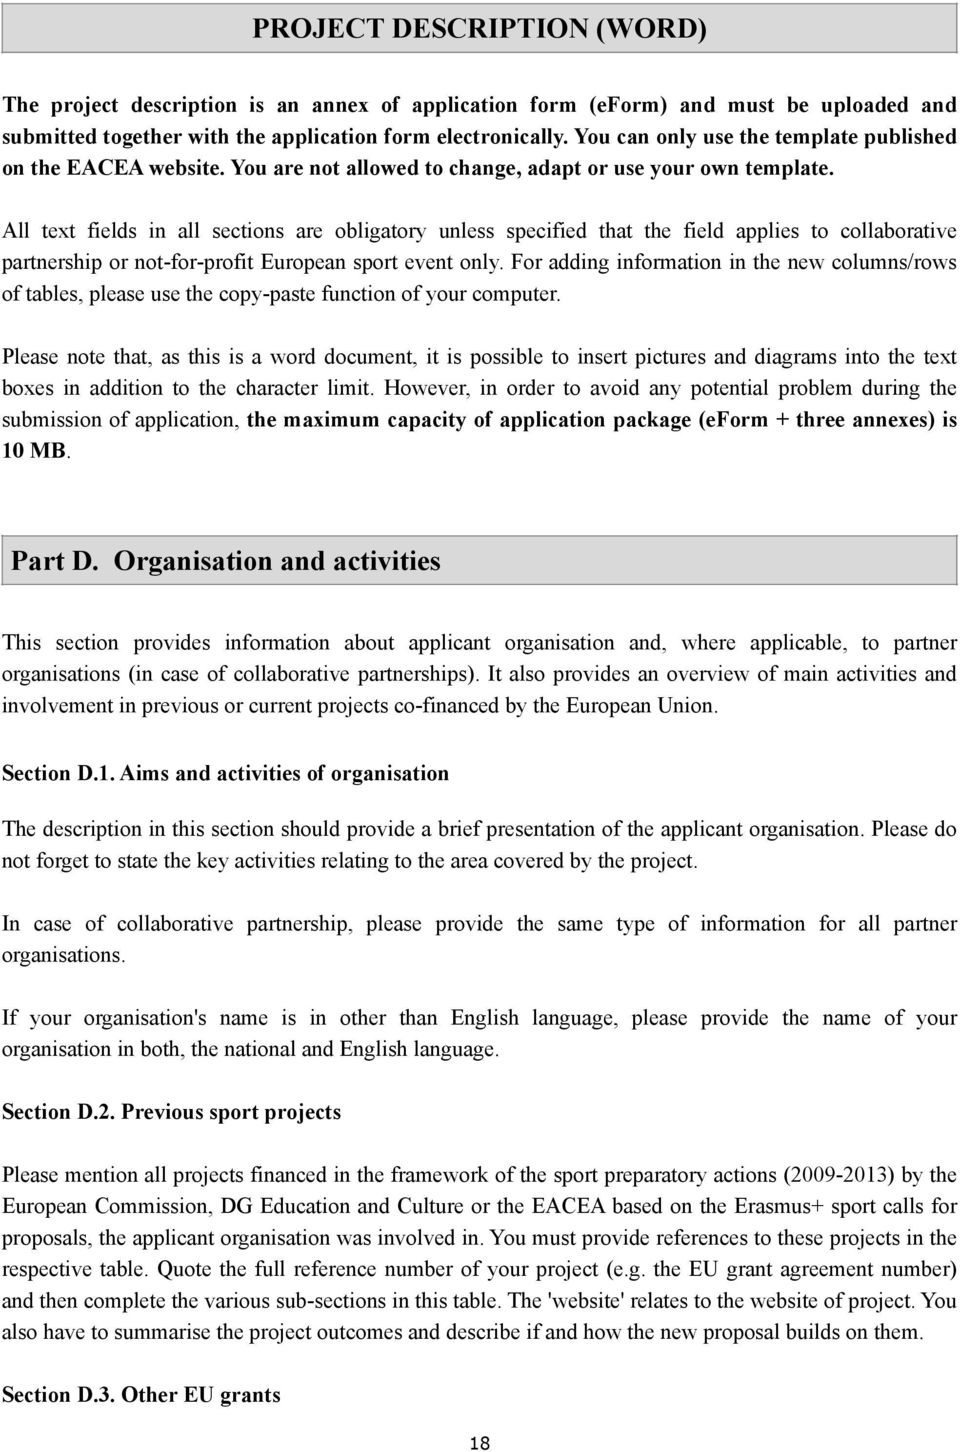 All text fields in all sections are obligatory unless specified that the field applies to collaborative partnership or not-for-profit European sport event only.